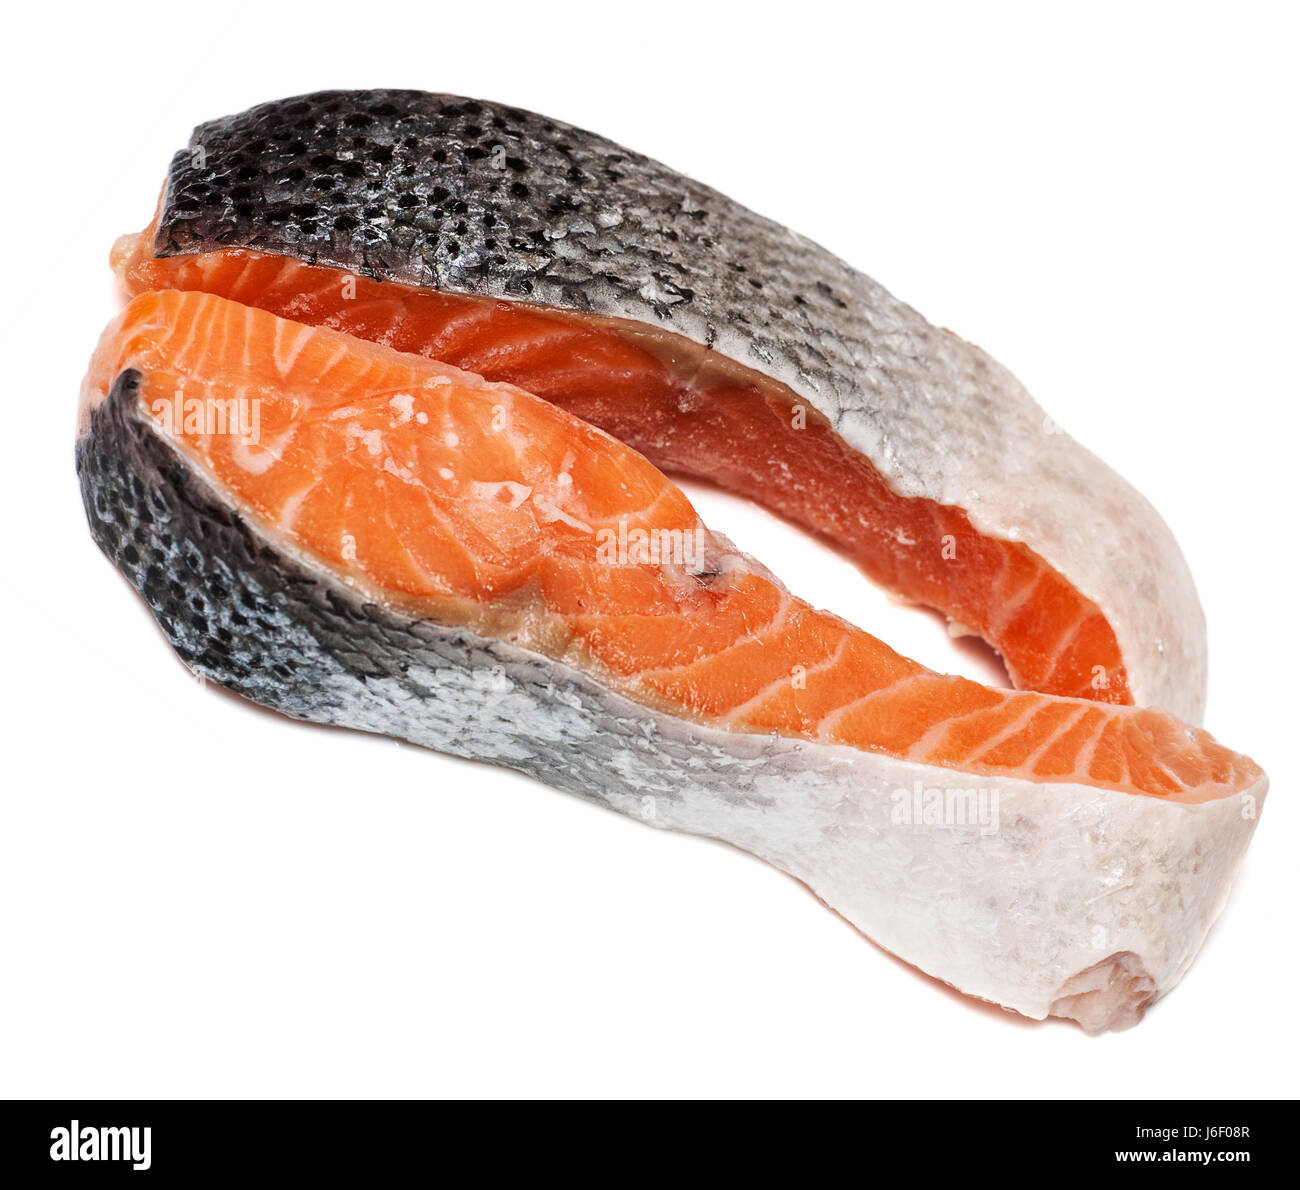 Two stakes from raw salmon fish isolated on white background - Stock Image